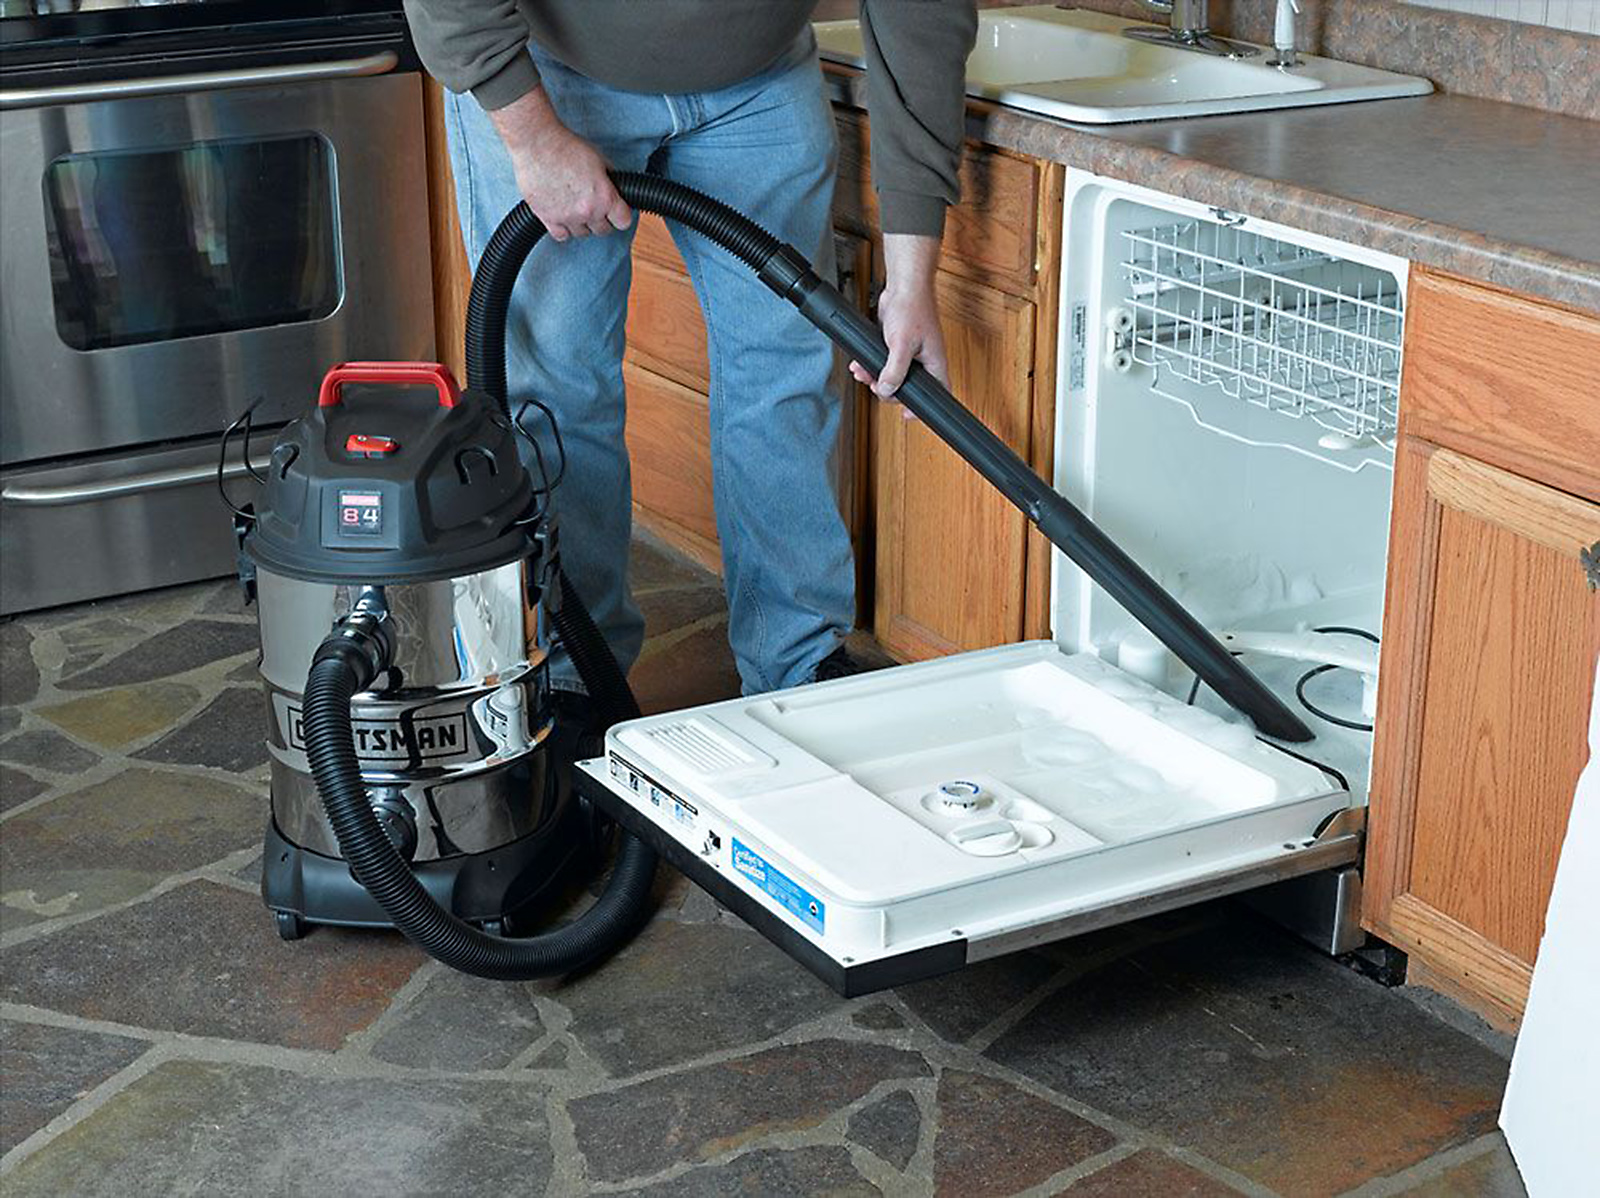 Craftsman 8 Gallon Stainless Steel 4 Peak HP Wet/Dry Vac